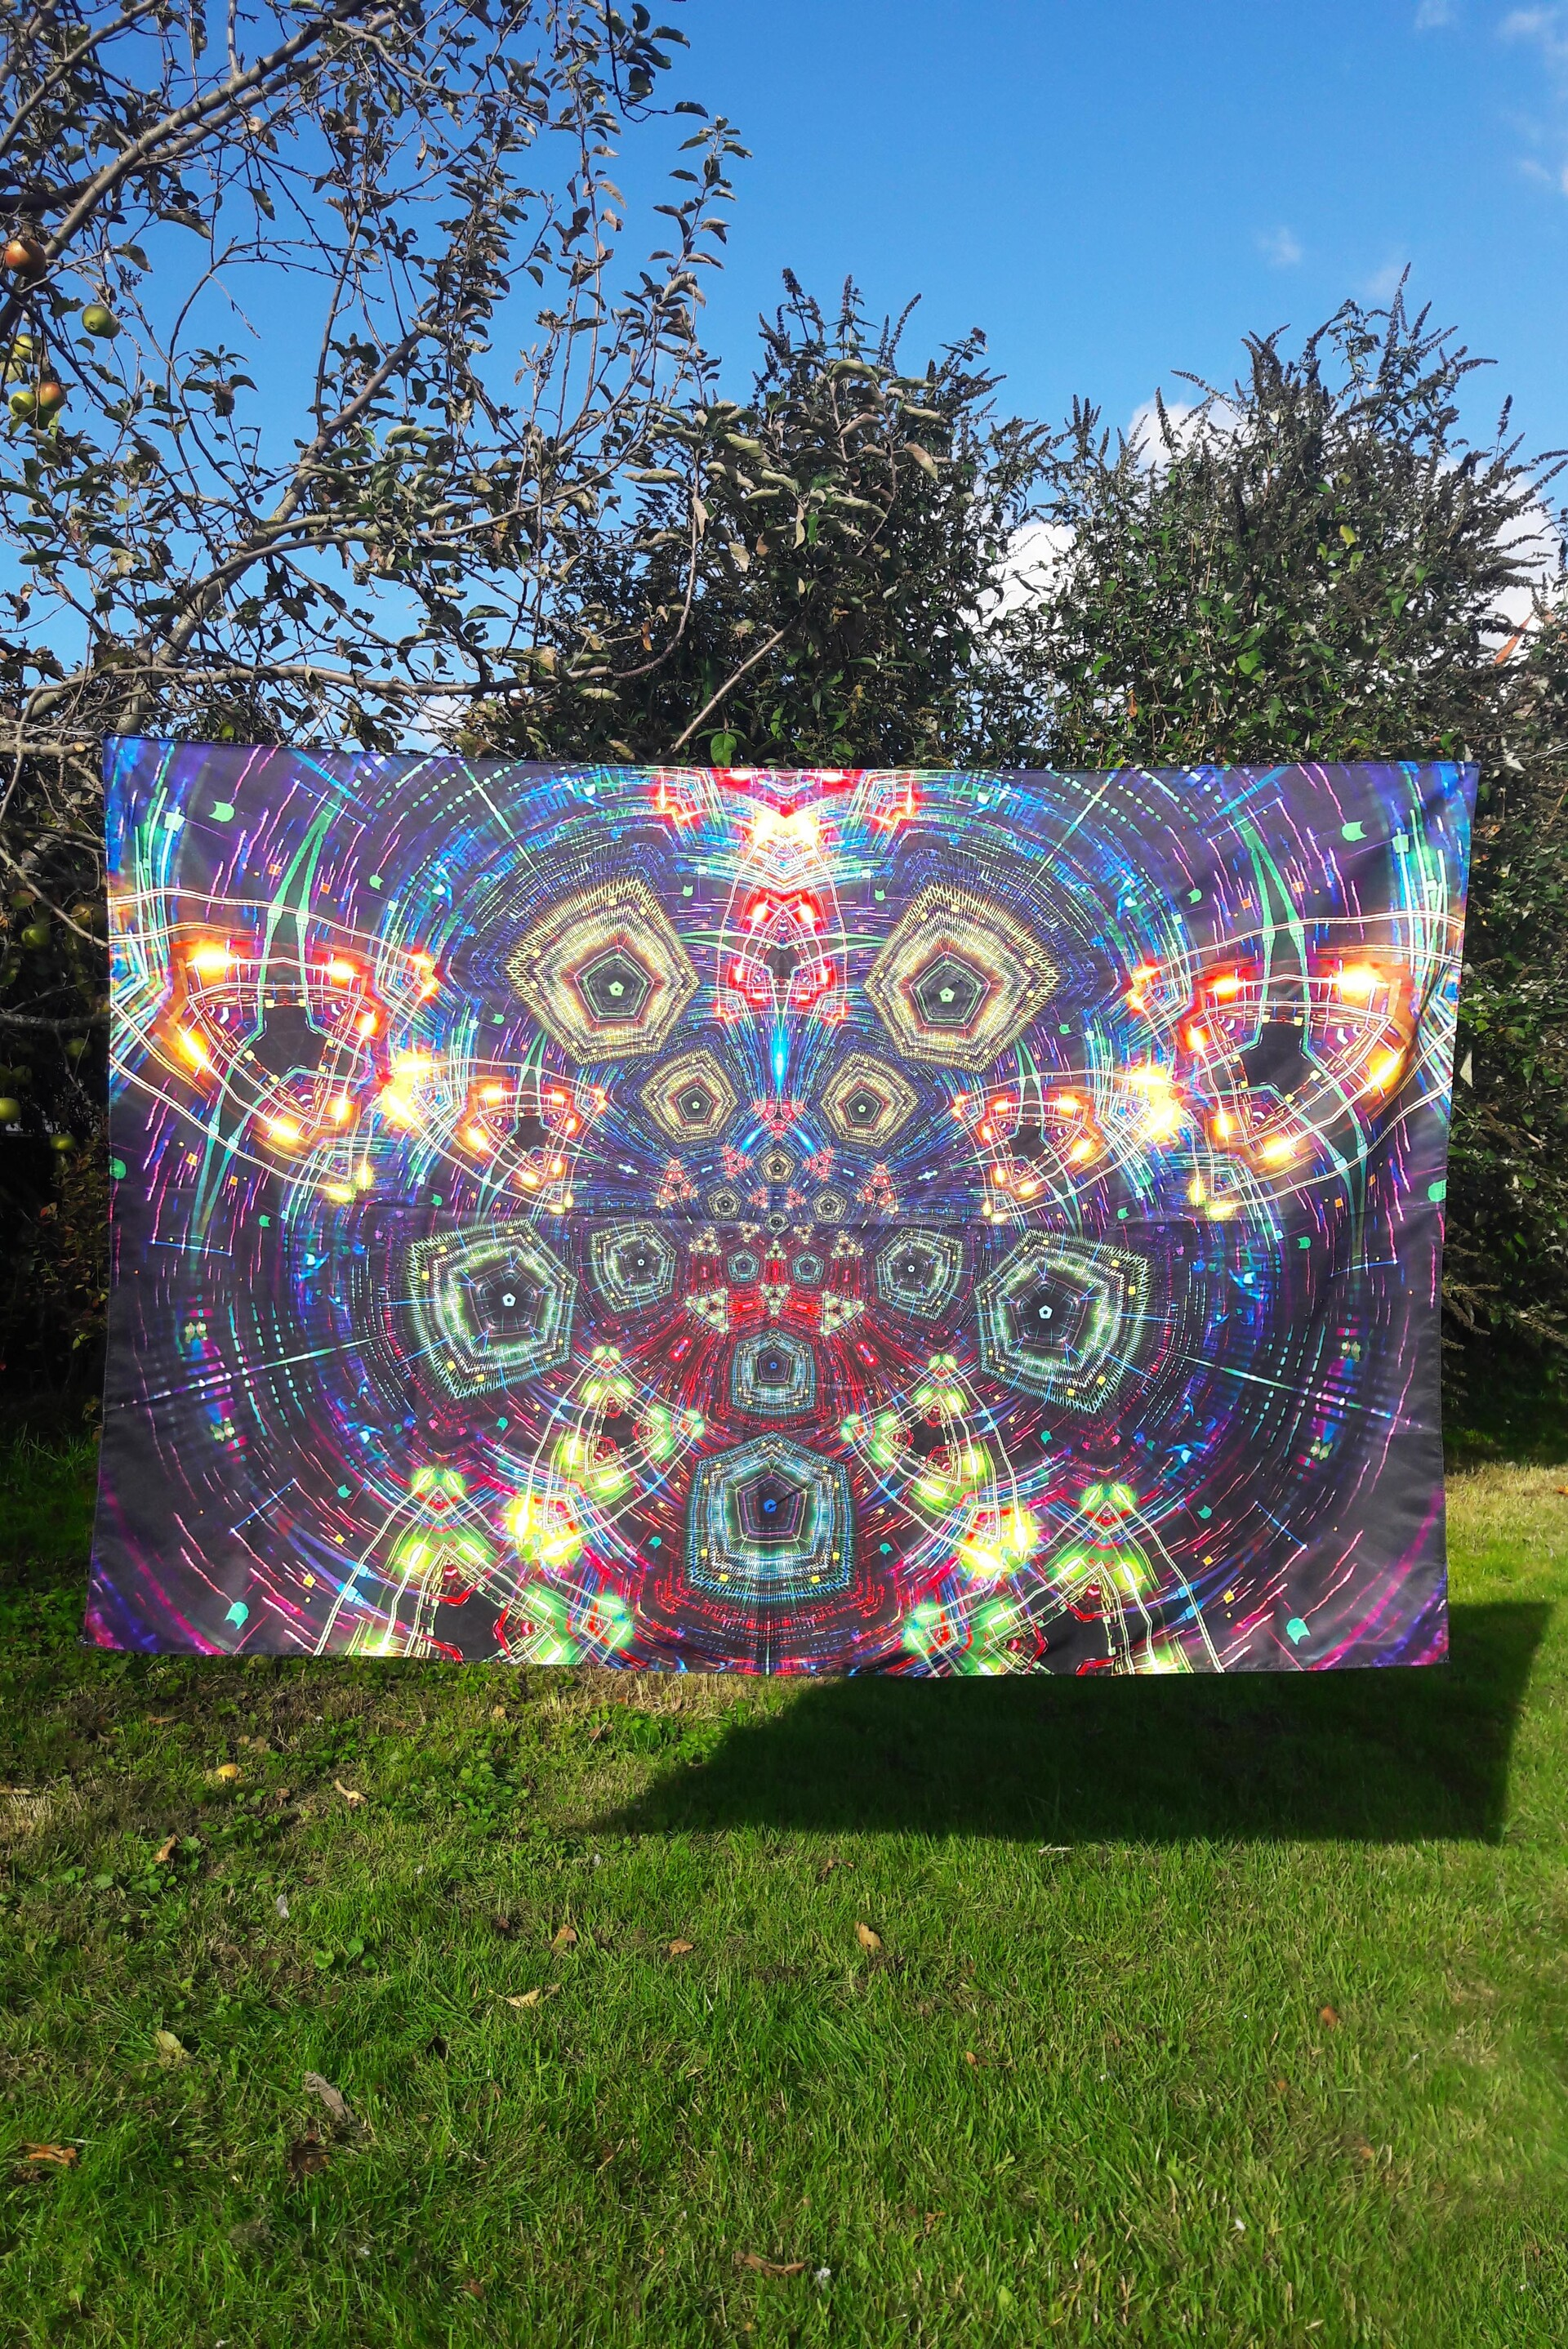 High Quality Tapestry Print  https://warp-store.myshopify.com/collections/tapestries/products/hi-tech-space-elf-tapestry